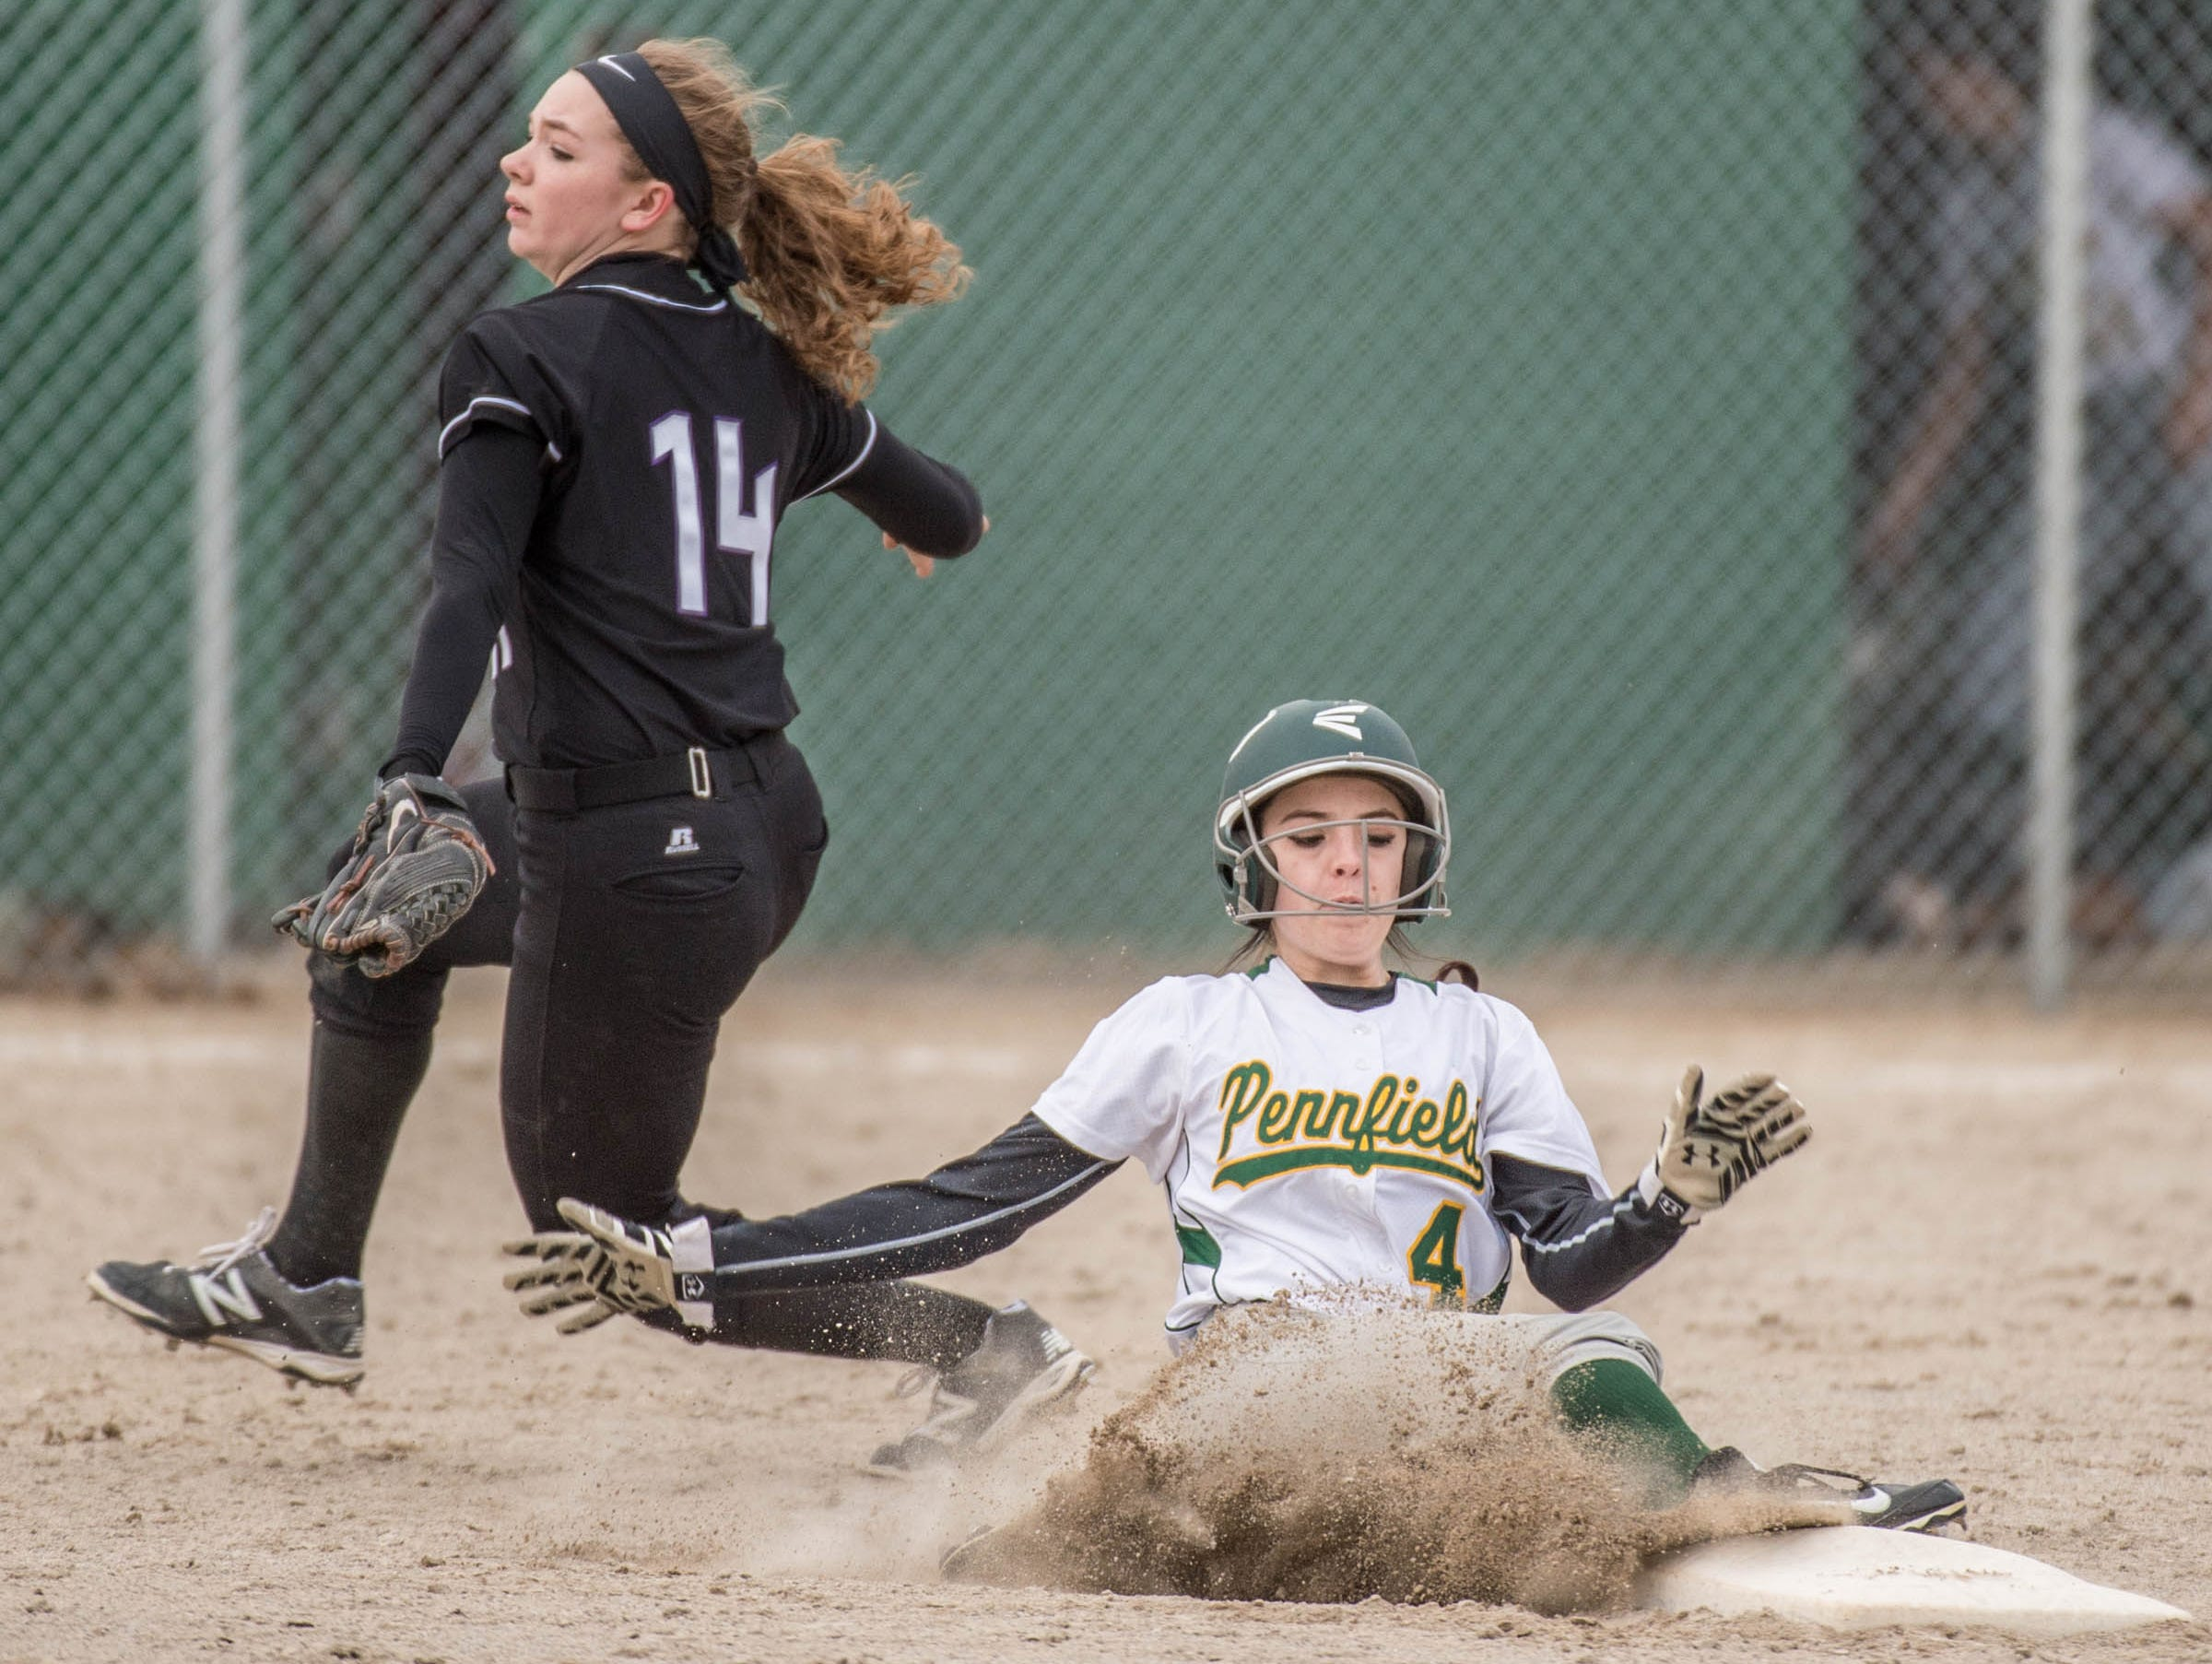 Pennfield's Lexi Purvis (4) slides into second base as Lakeview's Kim Kucharczyk (14) during a recent game.